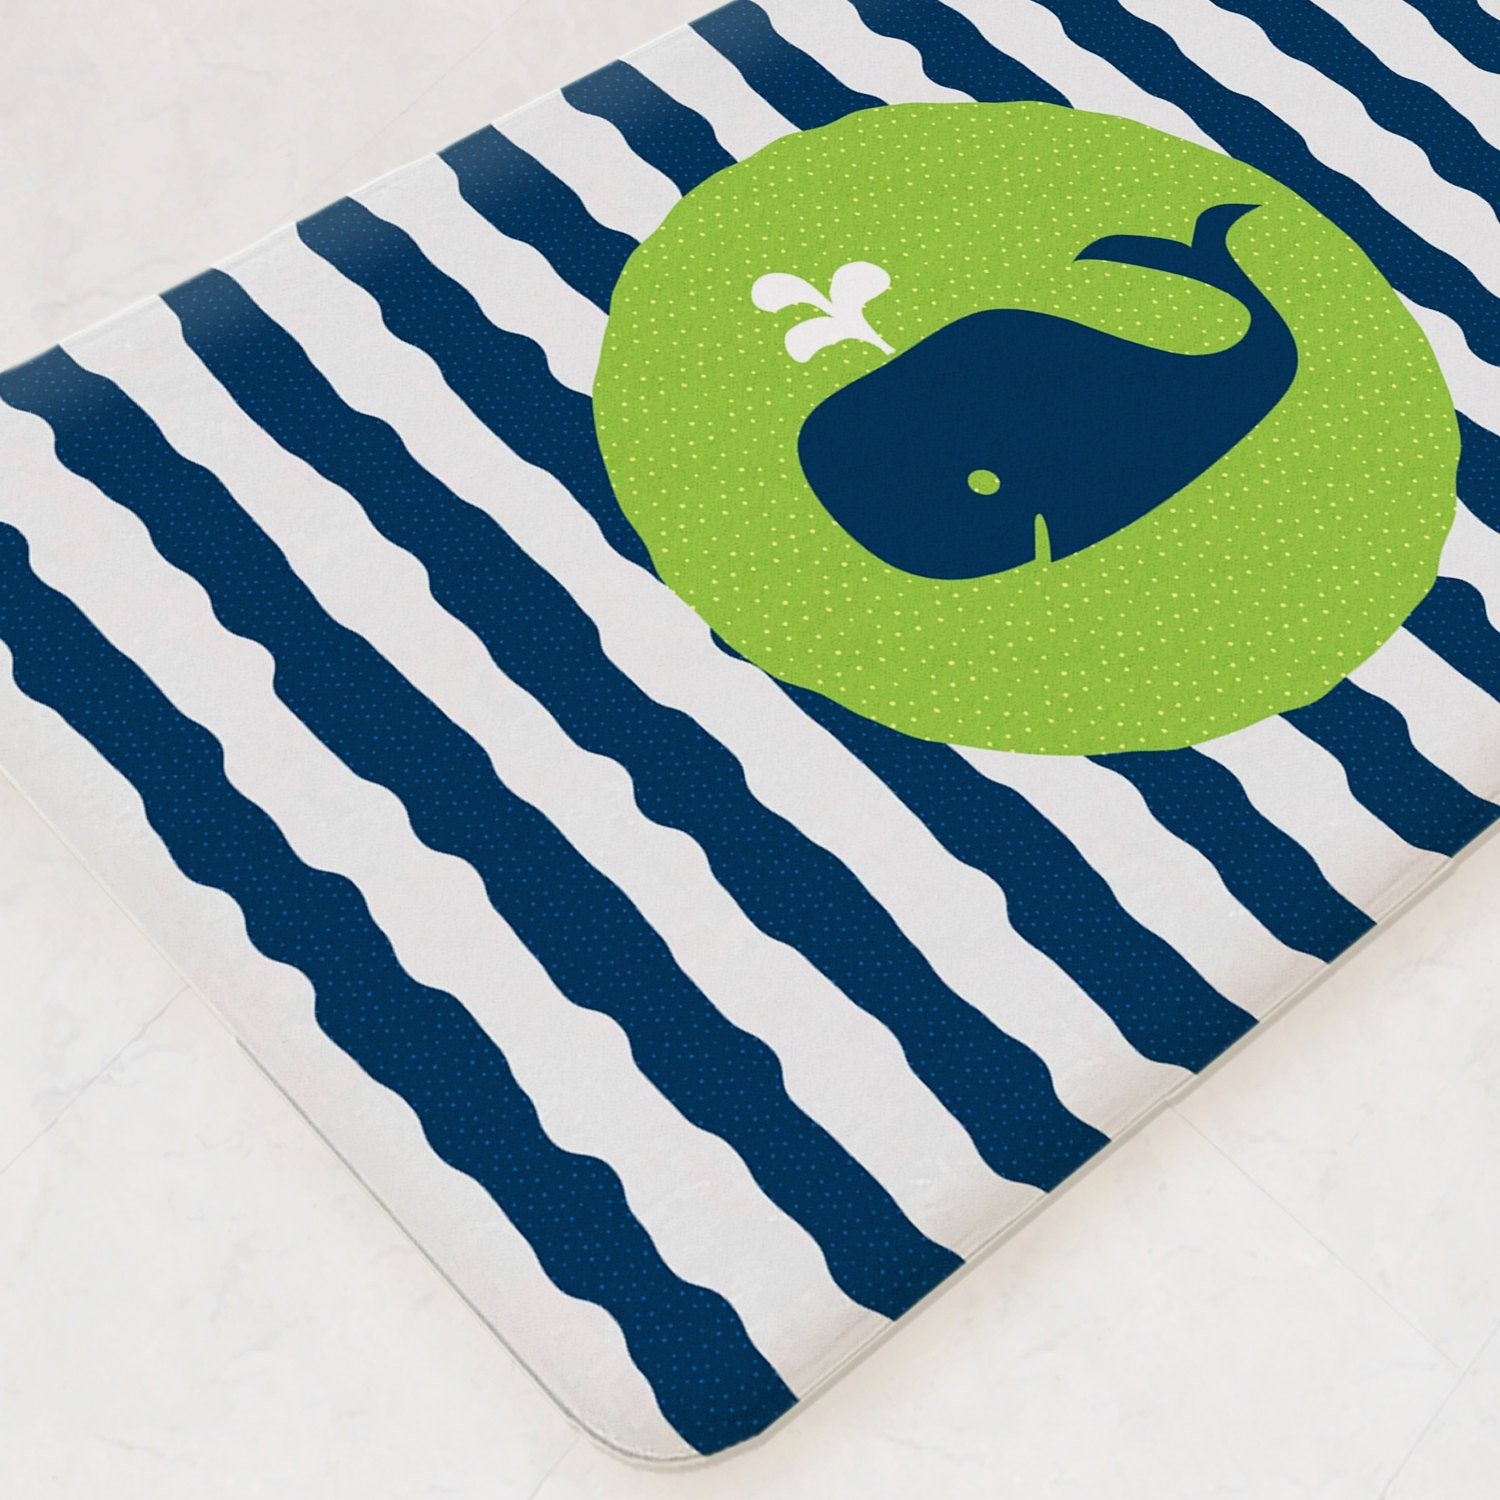 Whale Bath Mat, Whale Bathroom Decor, Fish Bathroom Decor, Ocean Bathroom Decor